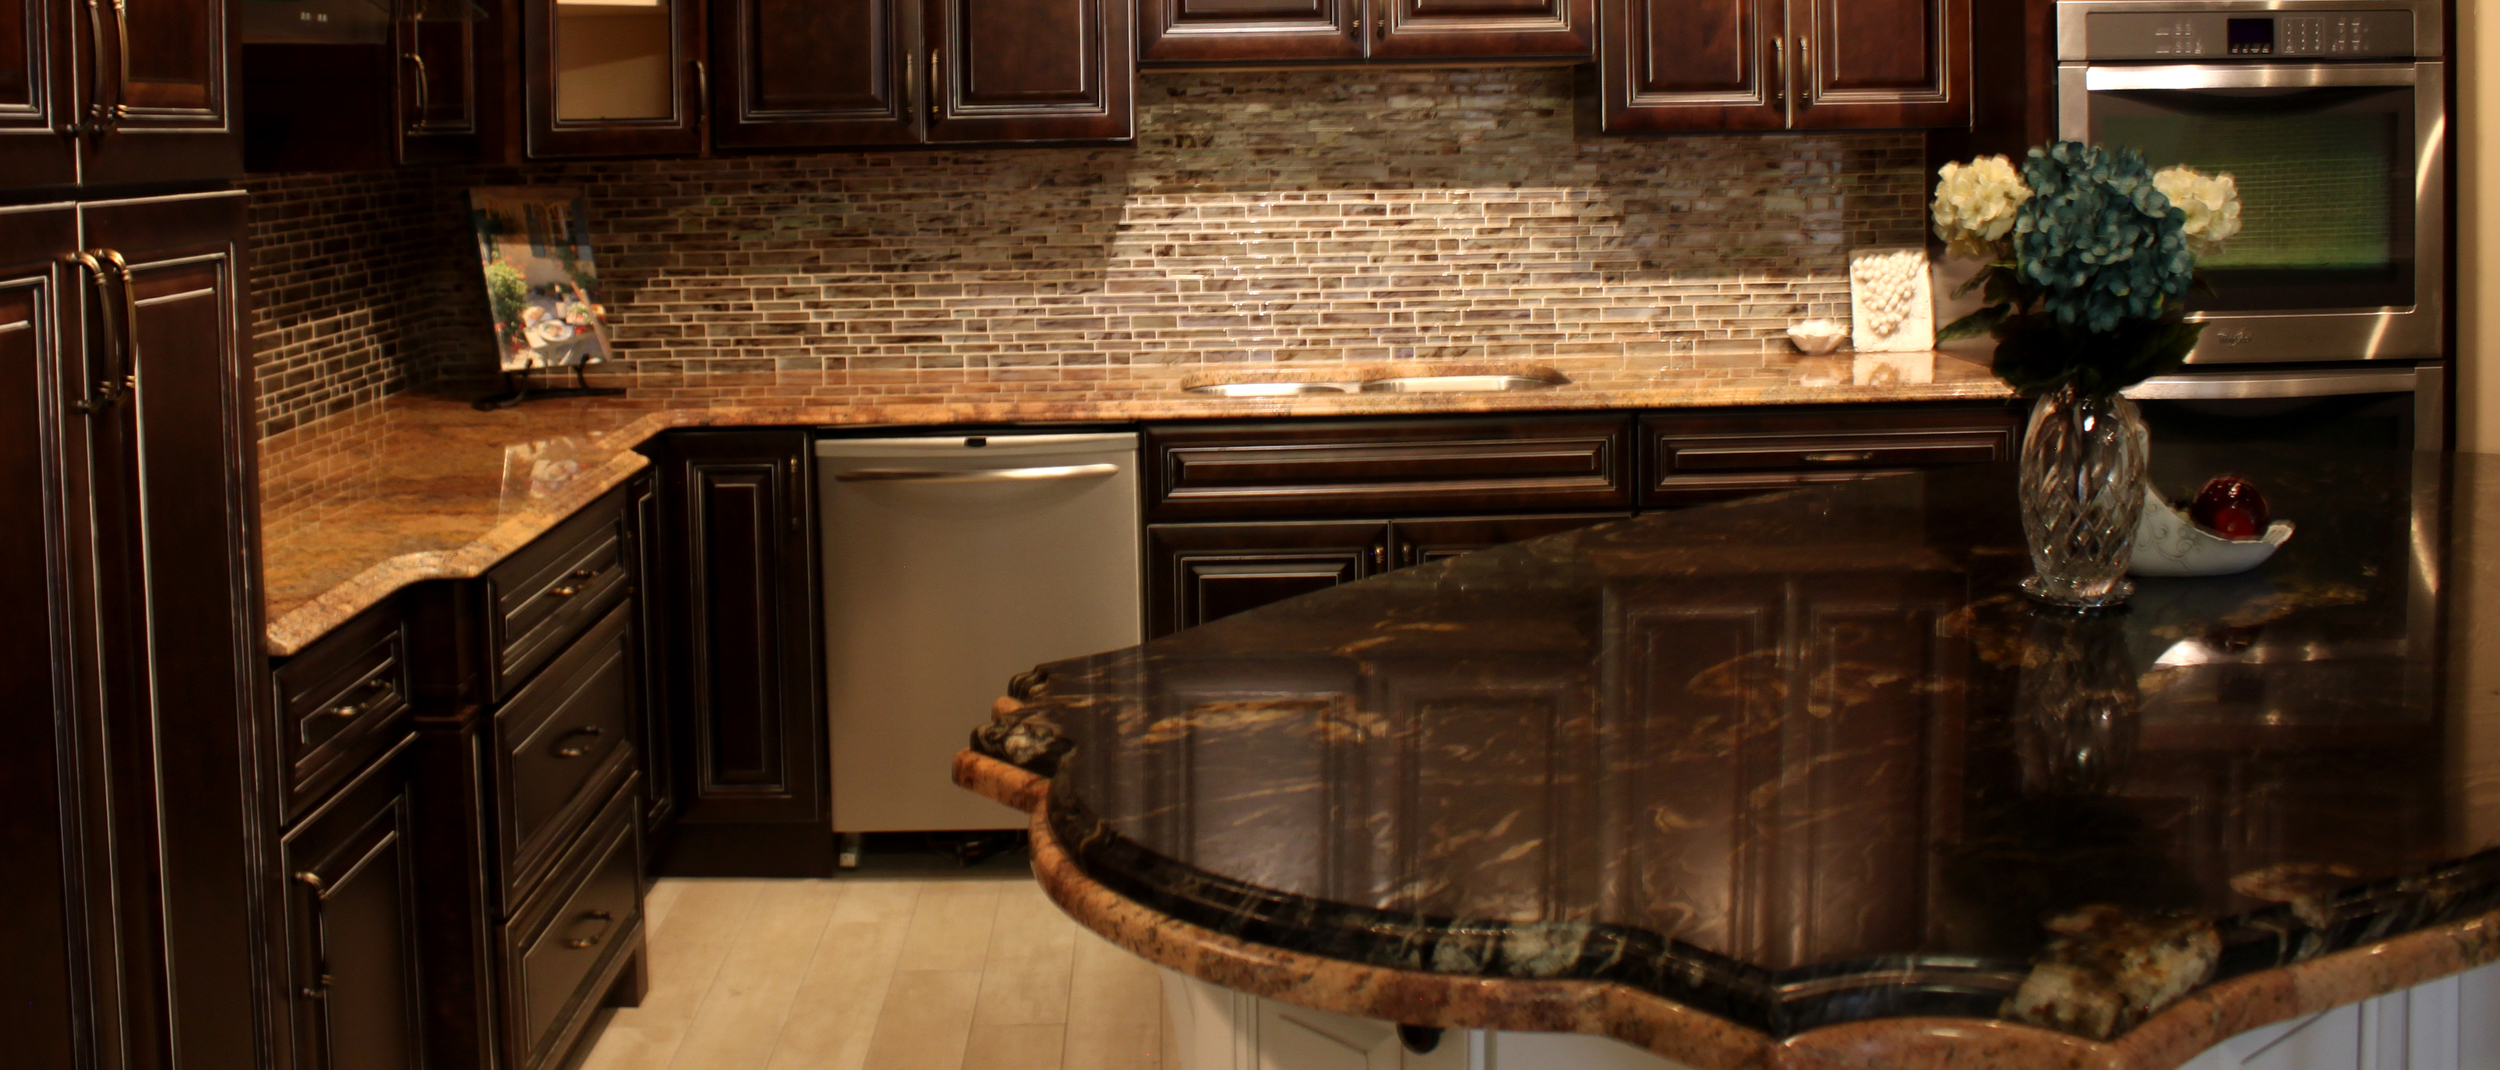 East Chicago Kitchen Cabinets, Sinks and Countertops — Rock ...